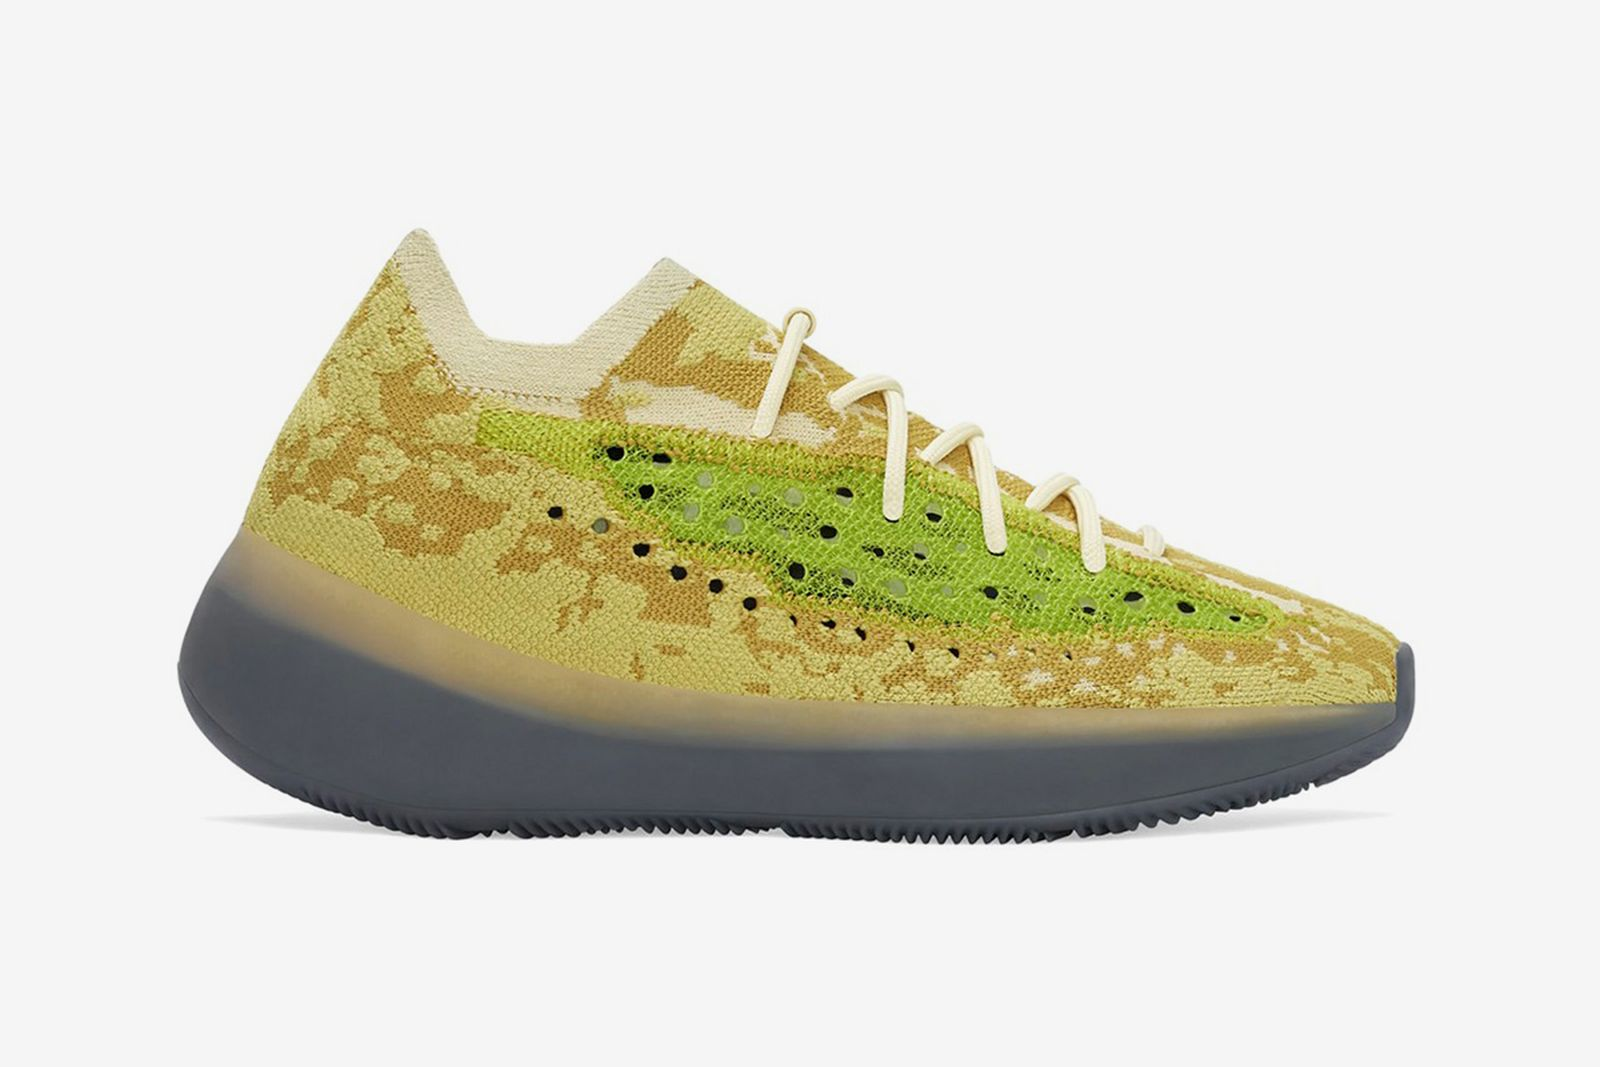 adidas-yeezy-boost-380-hylite-lmnte-azure-release-date-price-01